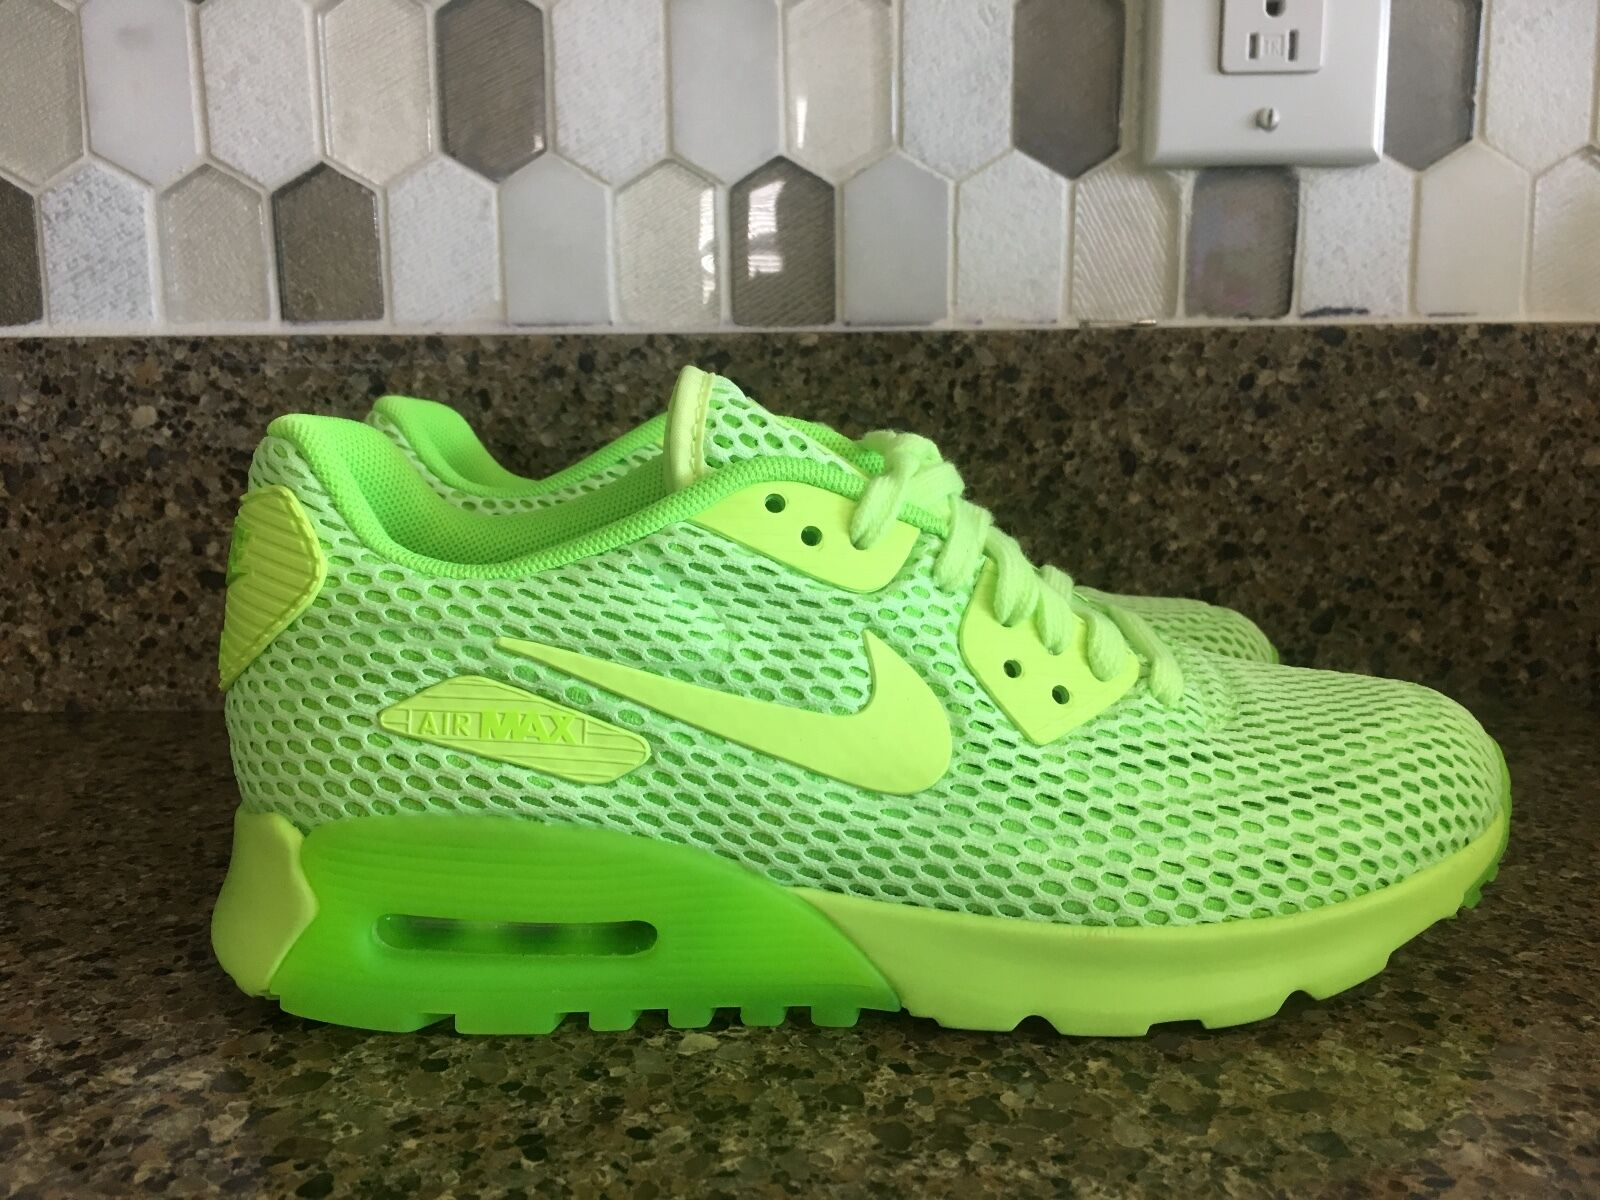 Nike Air Max 90 ULTRA BREATH Ghost Green Electric 725061-300 Women Sz 6.5, 8.5